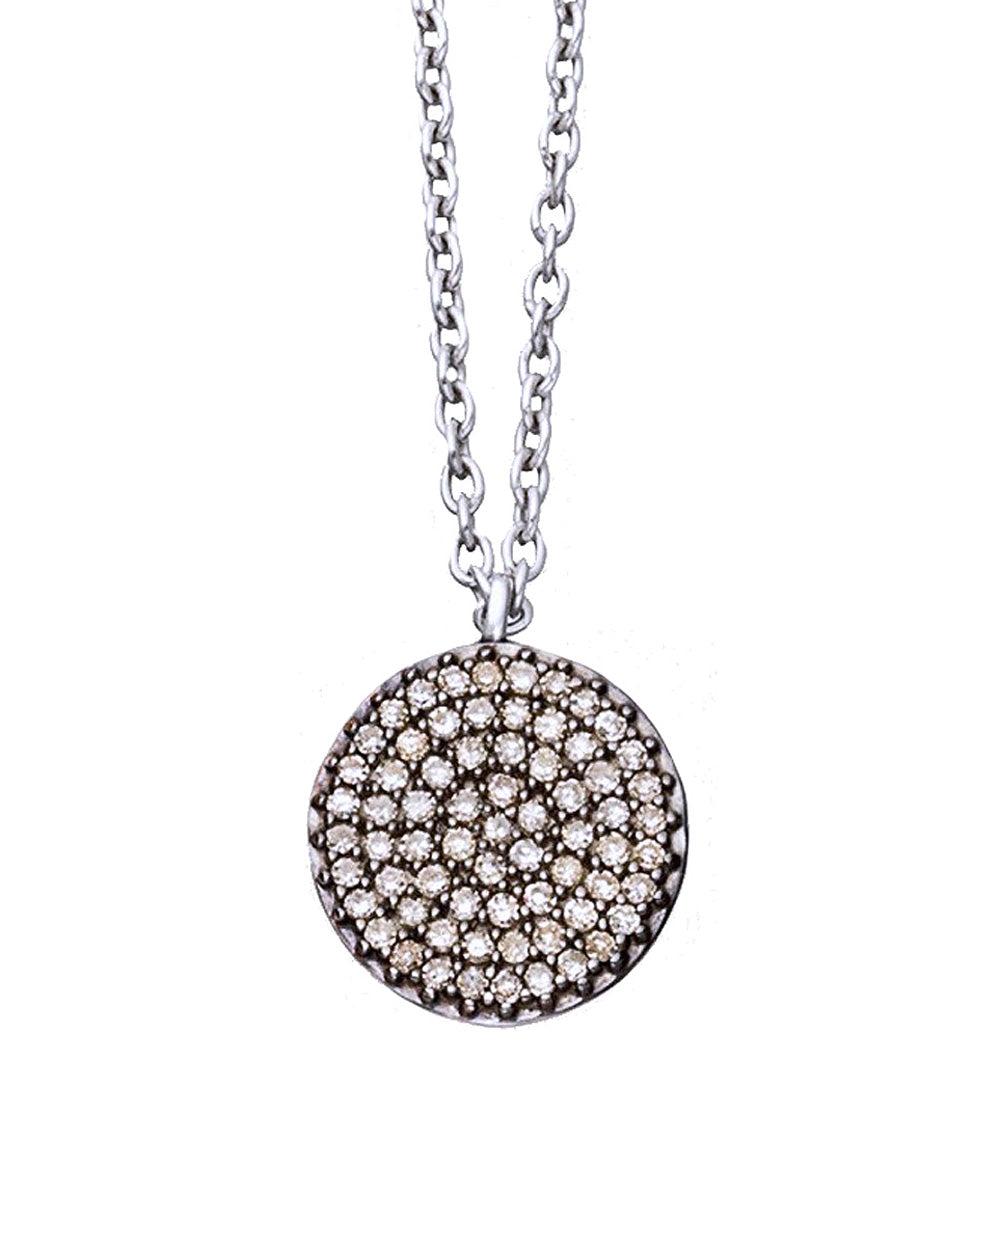 Starlet Disk Pendant Necklace 925 Sterling Silver